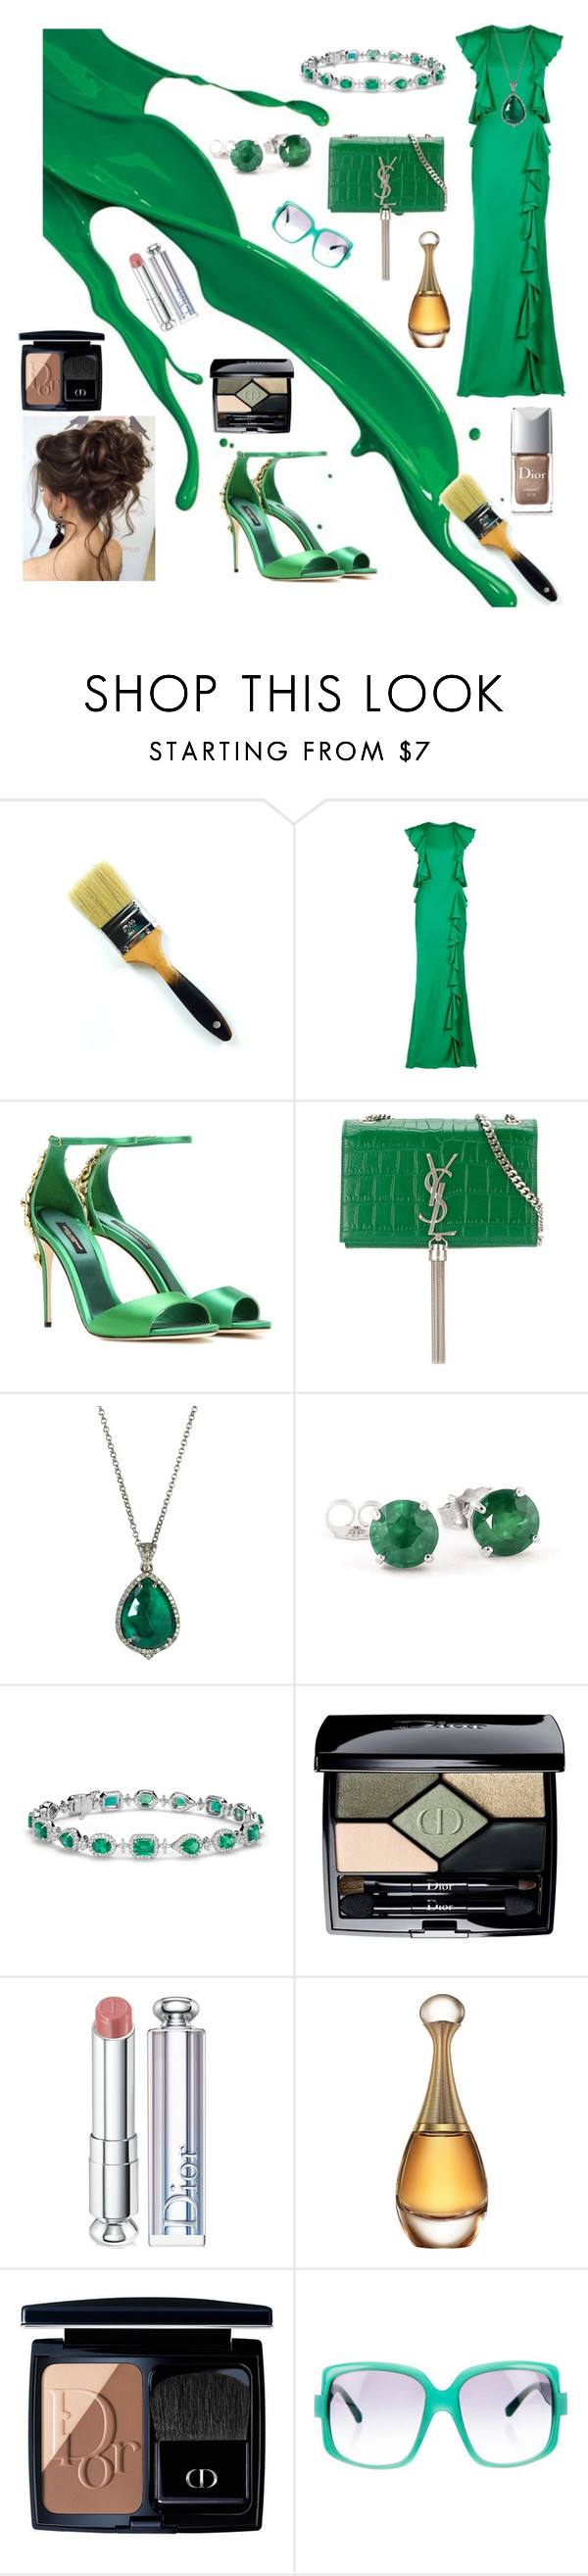 """Dash of green"" by yvette-colon ❤ liked on Polyvore featuring Alexander McQueen, Dolce&Gabbana, Yves Saint Laurent, Bavna, Blue Nile and Christian Dior"